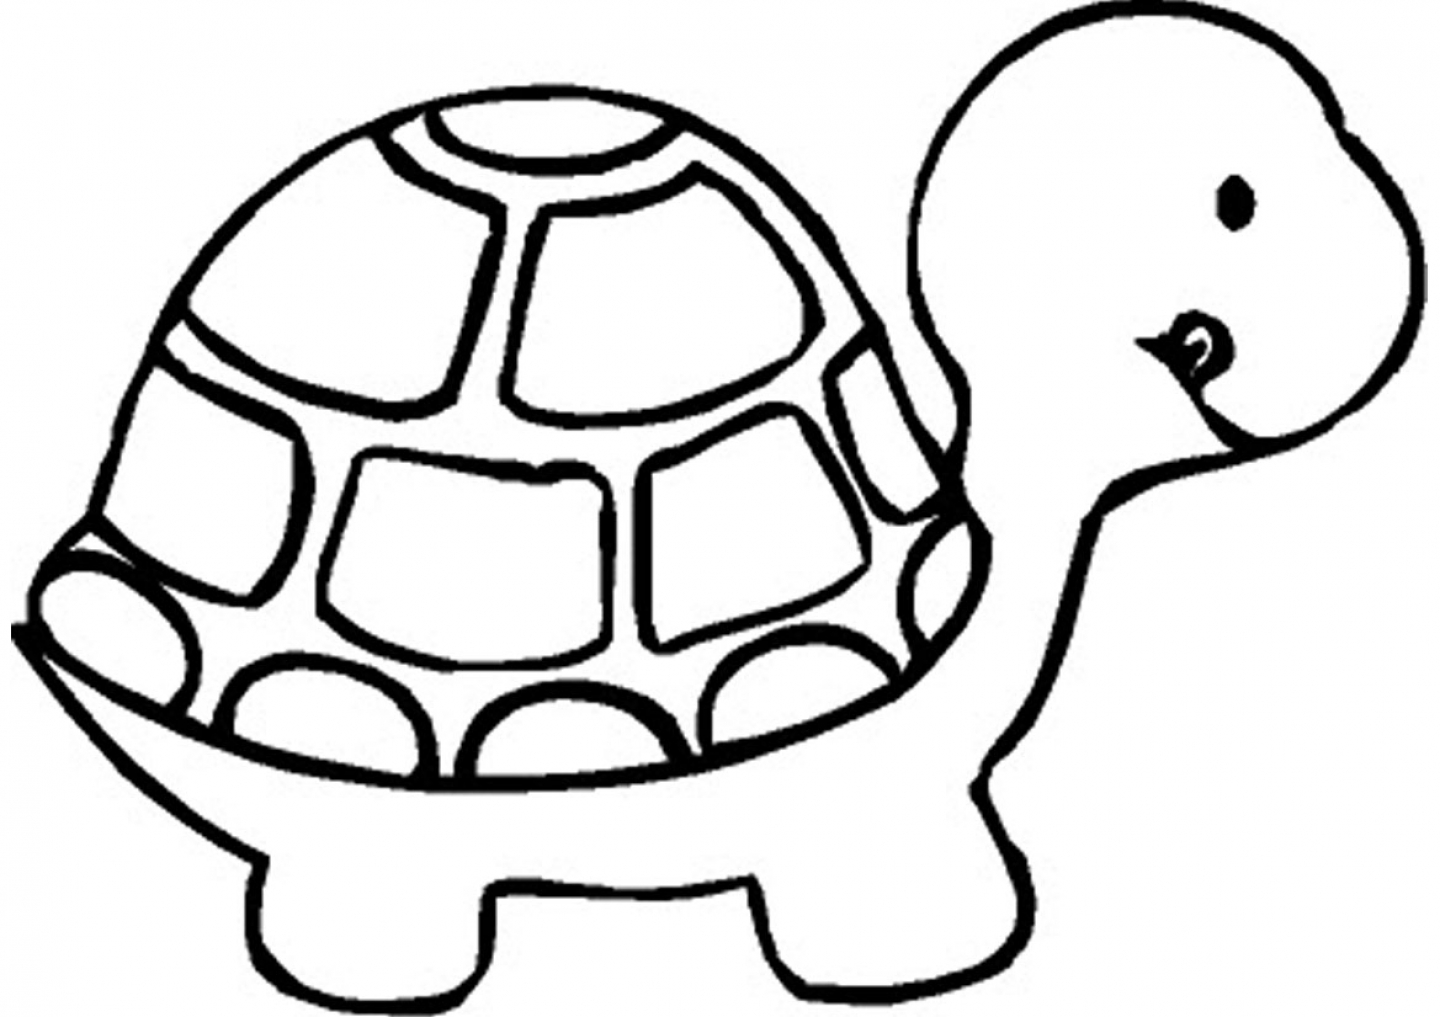 Baby tortoise coloring page